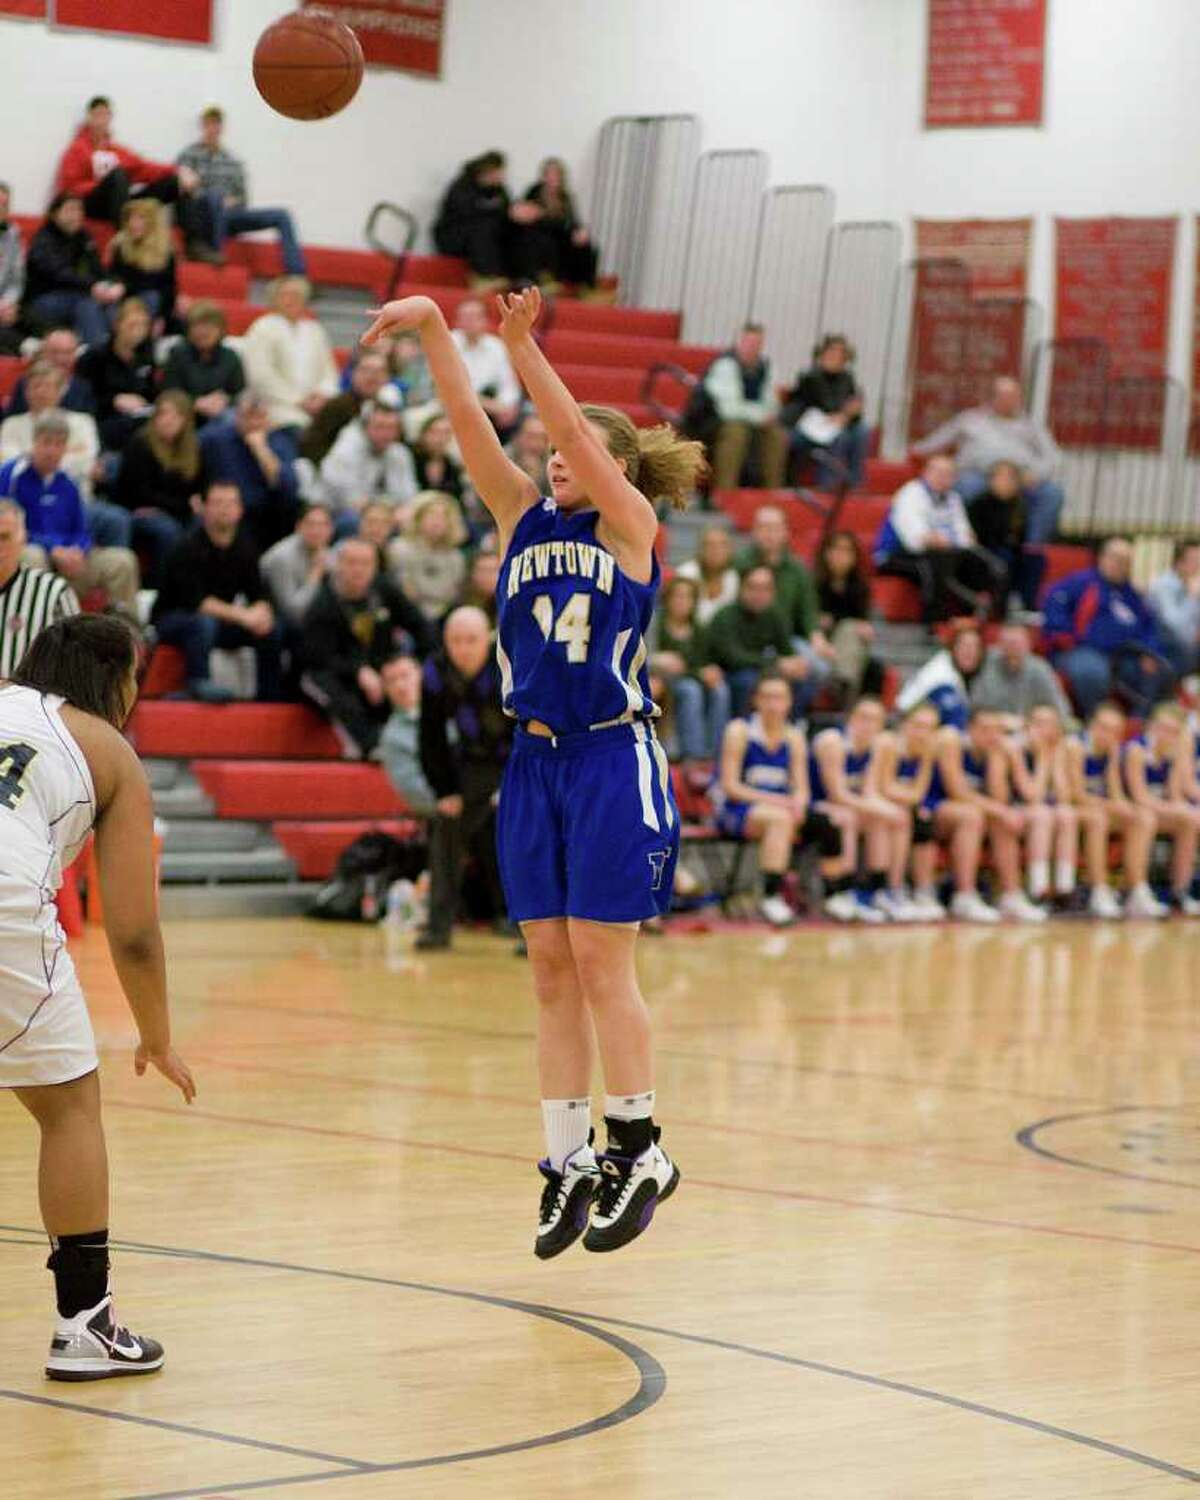 Newtown's Maddy Good shots a jump shot against Lauralton Hall in the SWC championship game Thursday night at Pomperaug High School.